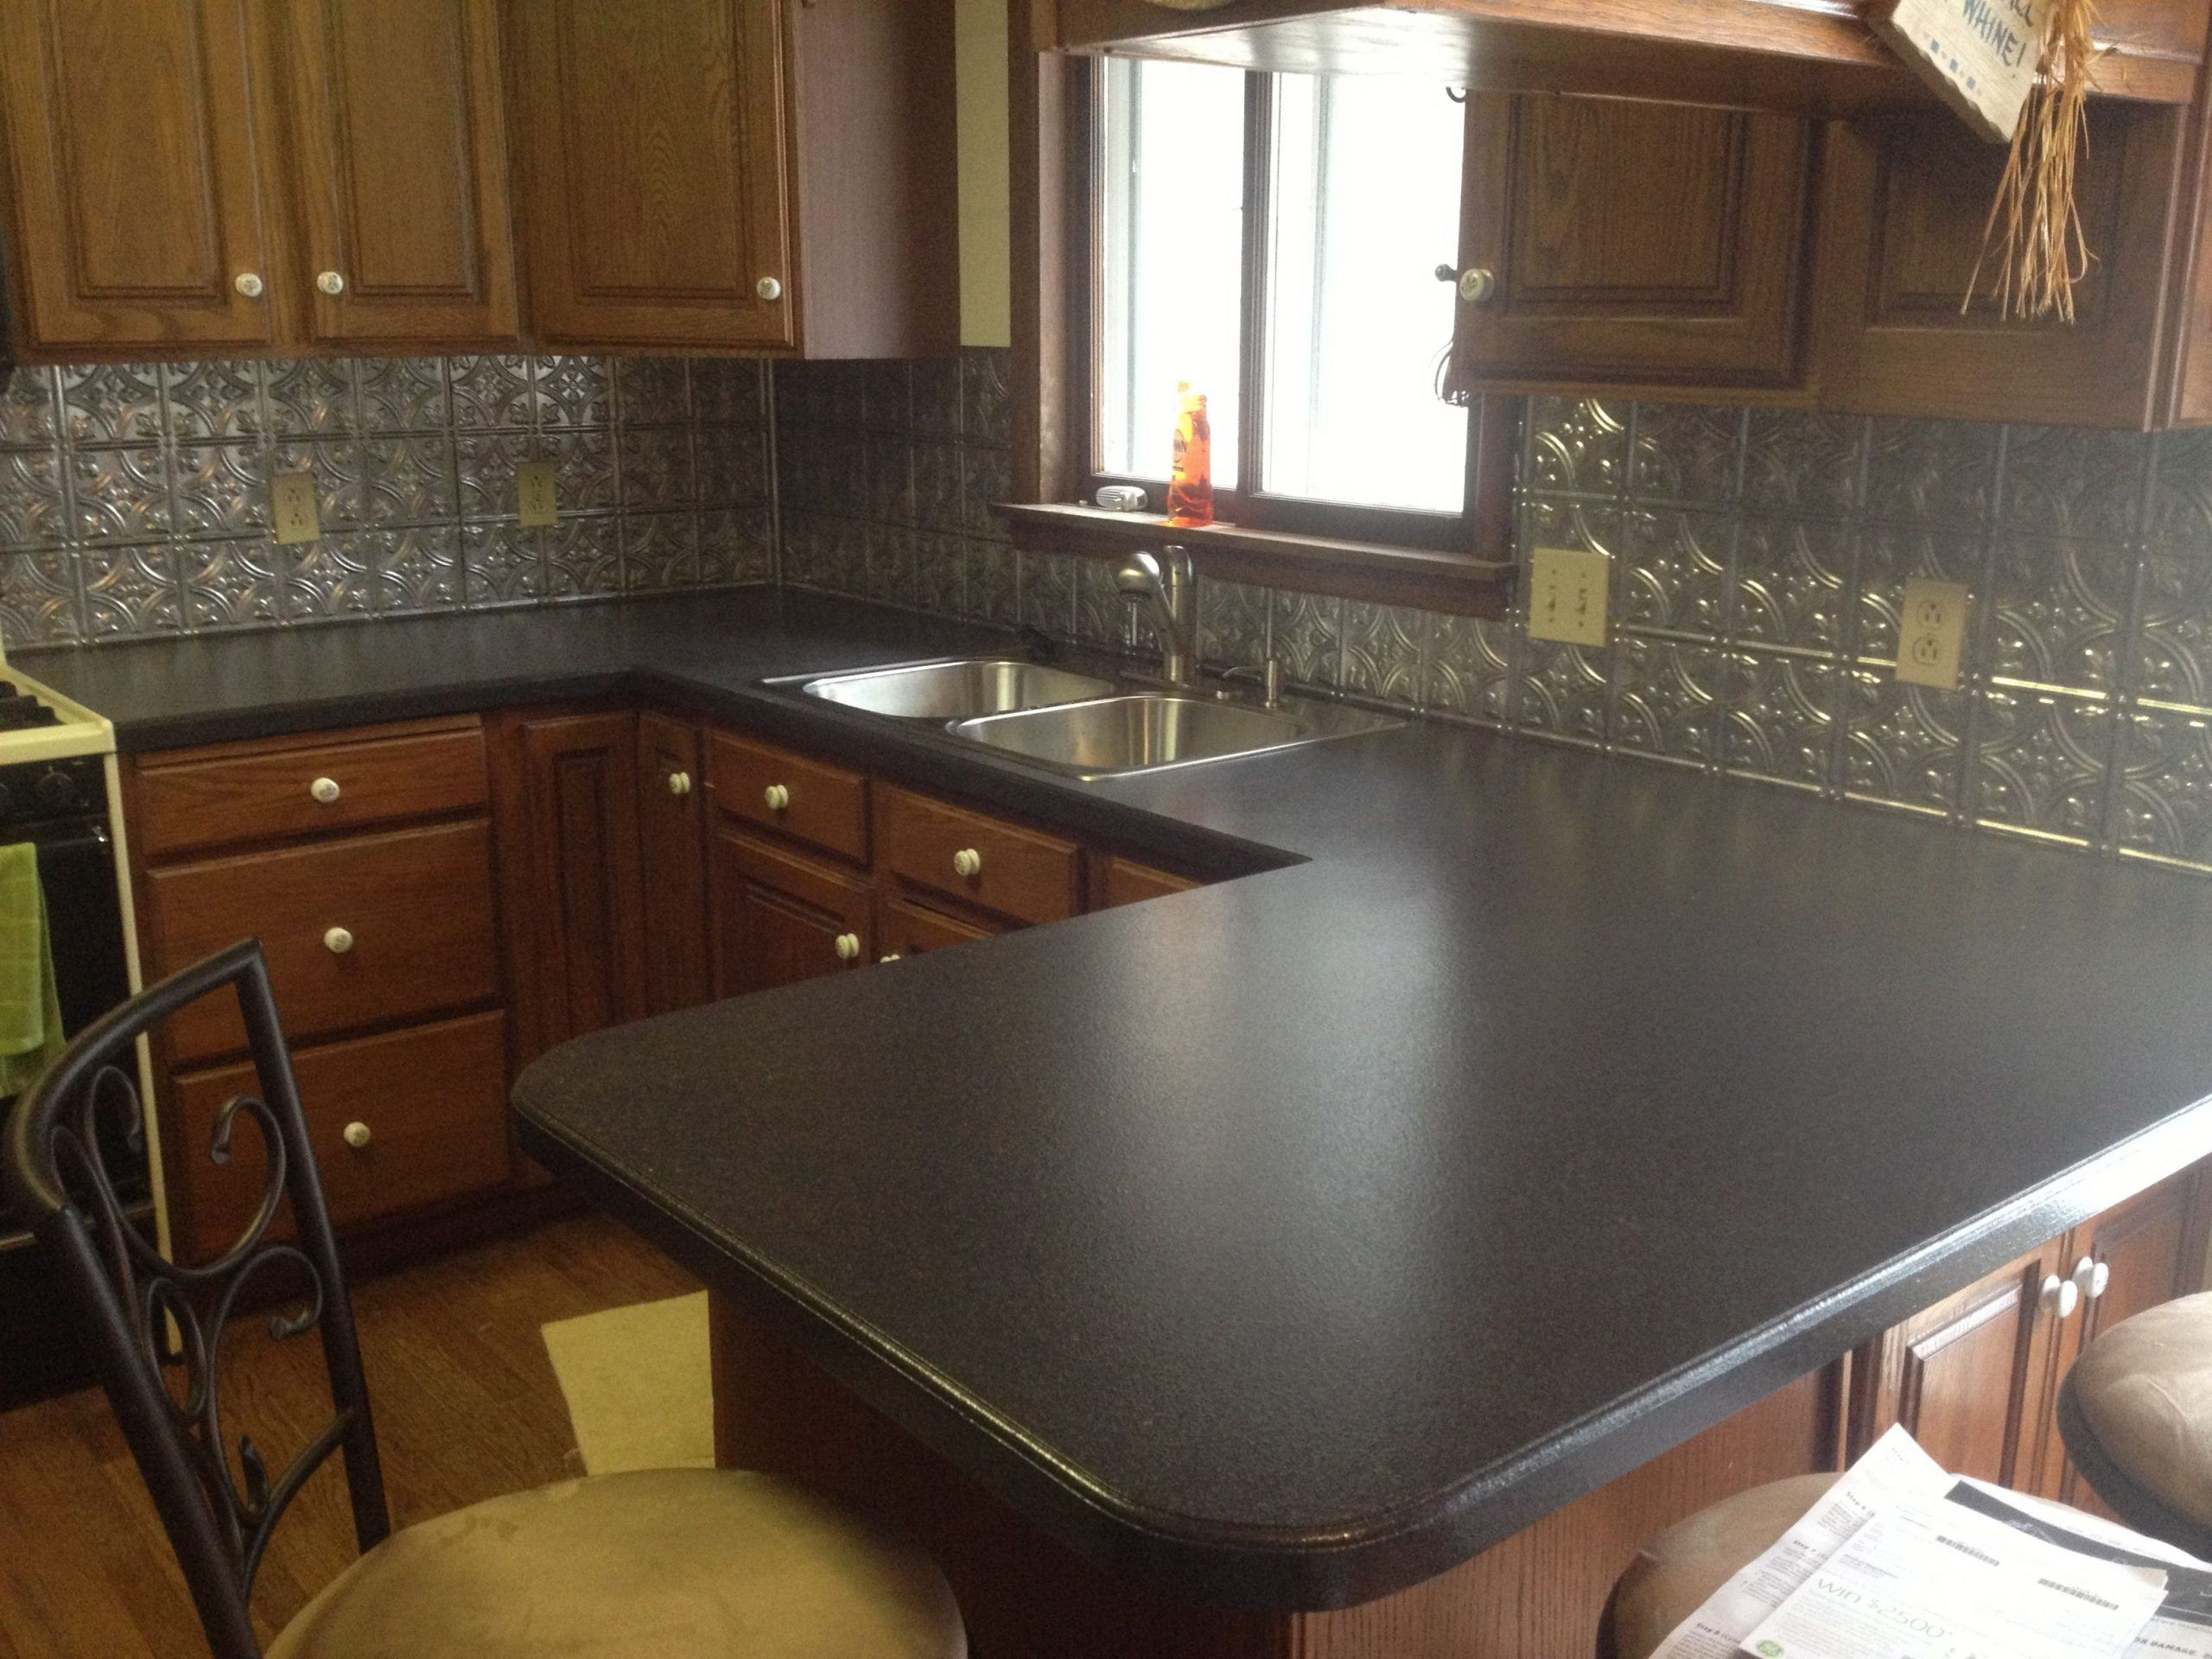 Corian Countertop Vs Laminate 2 Things You Need To Know About Corian Countertop Vs L In 2020 Kitchen Countertops Prices Kitchen Countertops Corian Kitchen Countertops